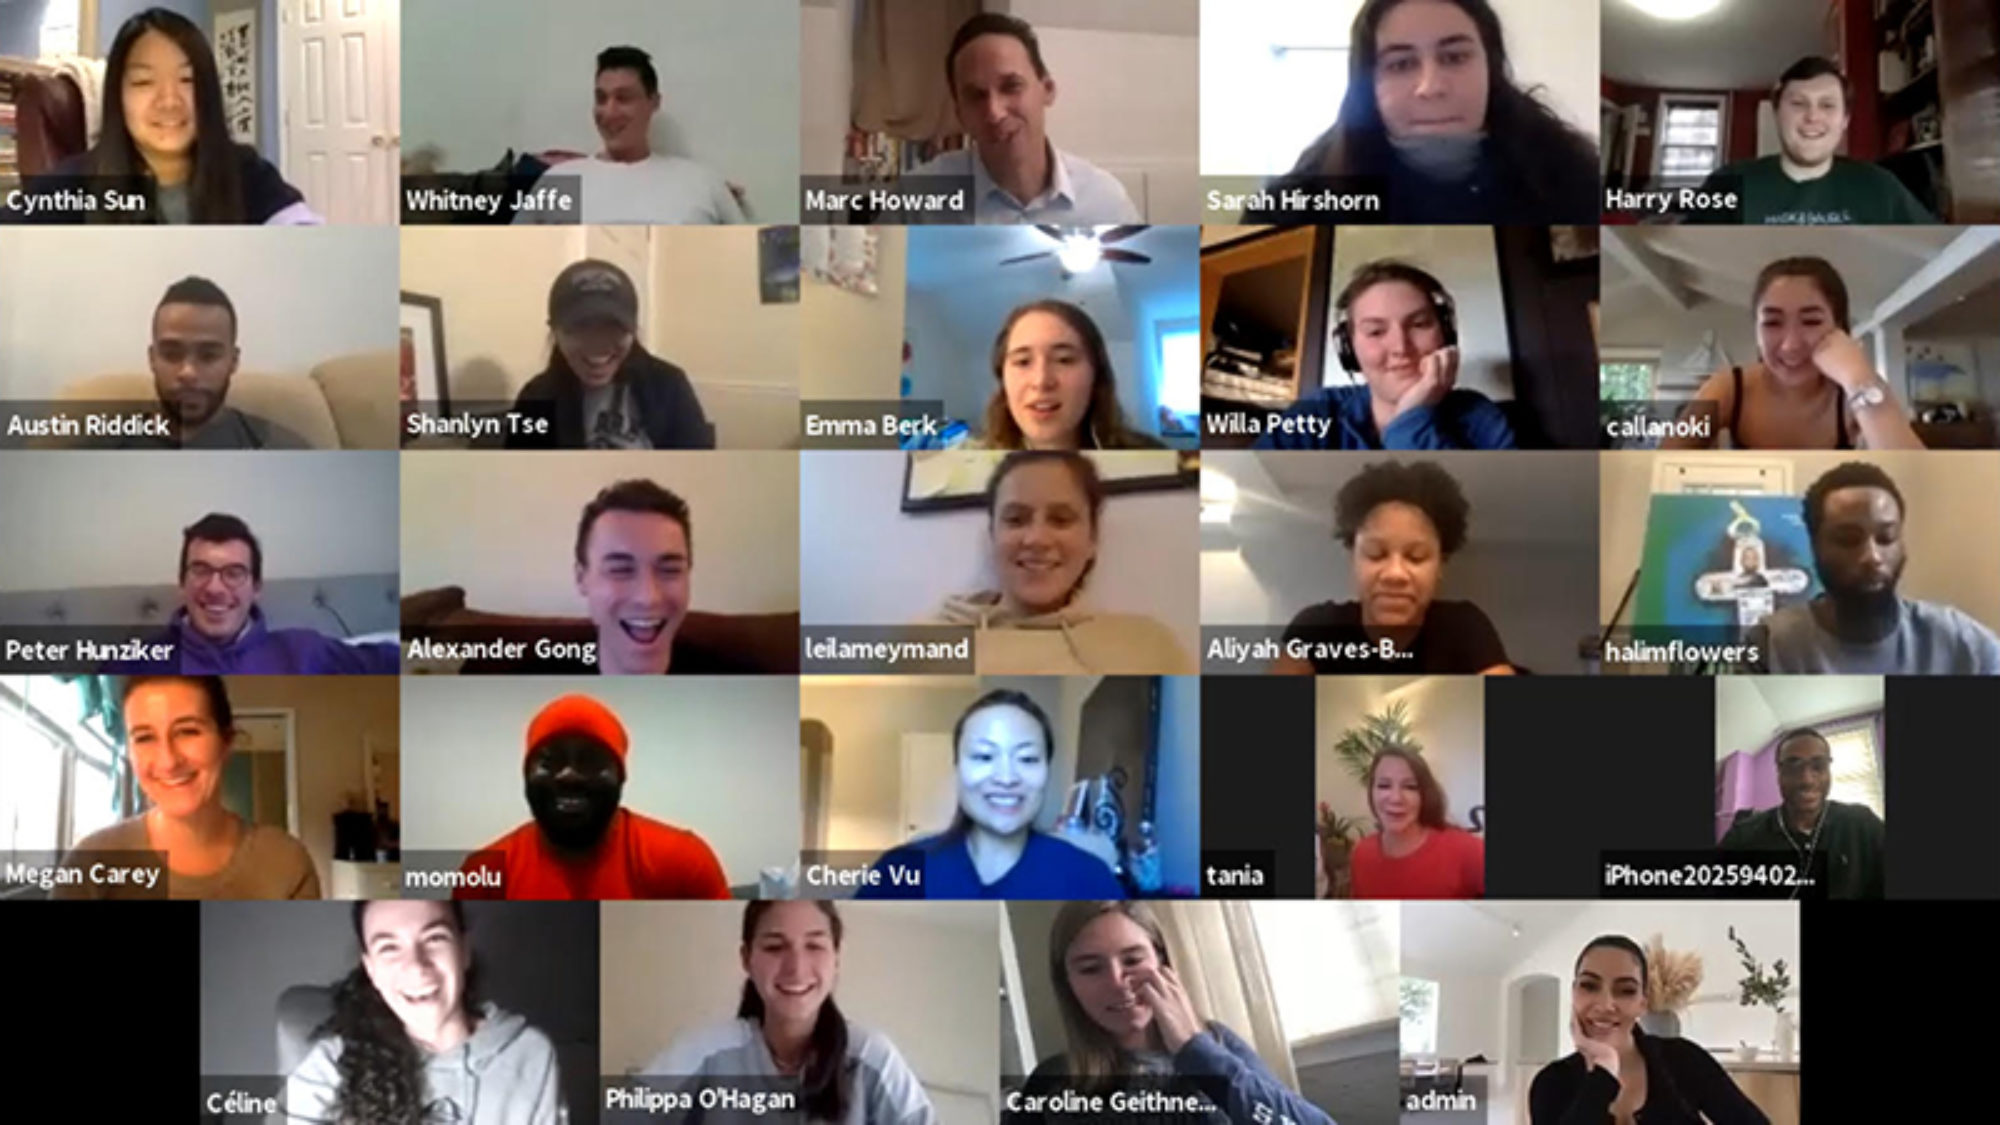 A screenshot of students and formerly incarcerated prison scholar program participants in a Zoom session with professor Marc Howard and Kim Kardashian.